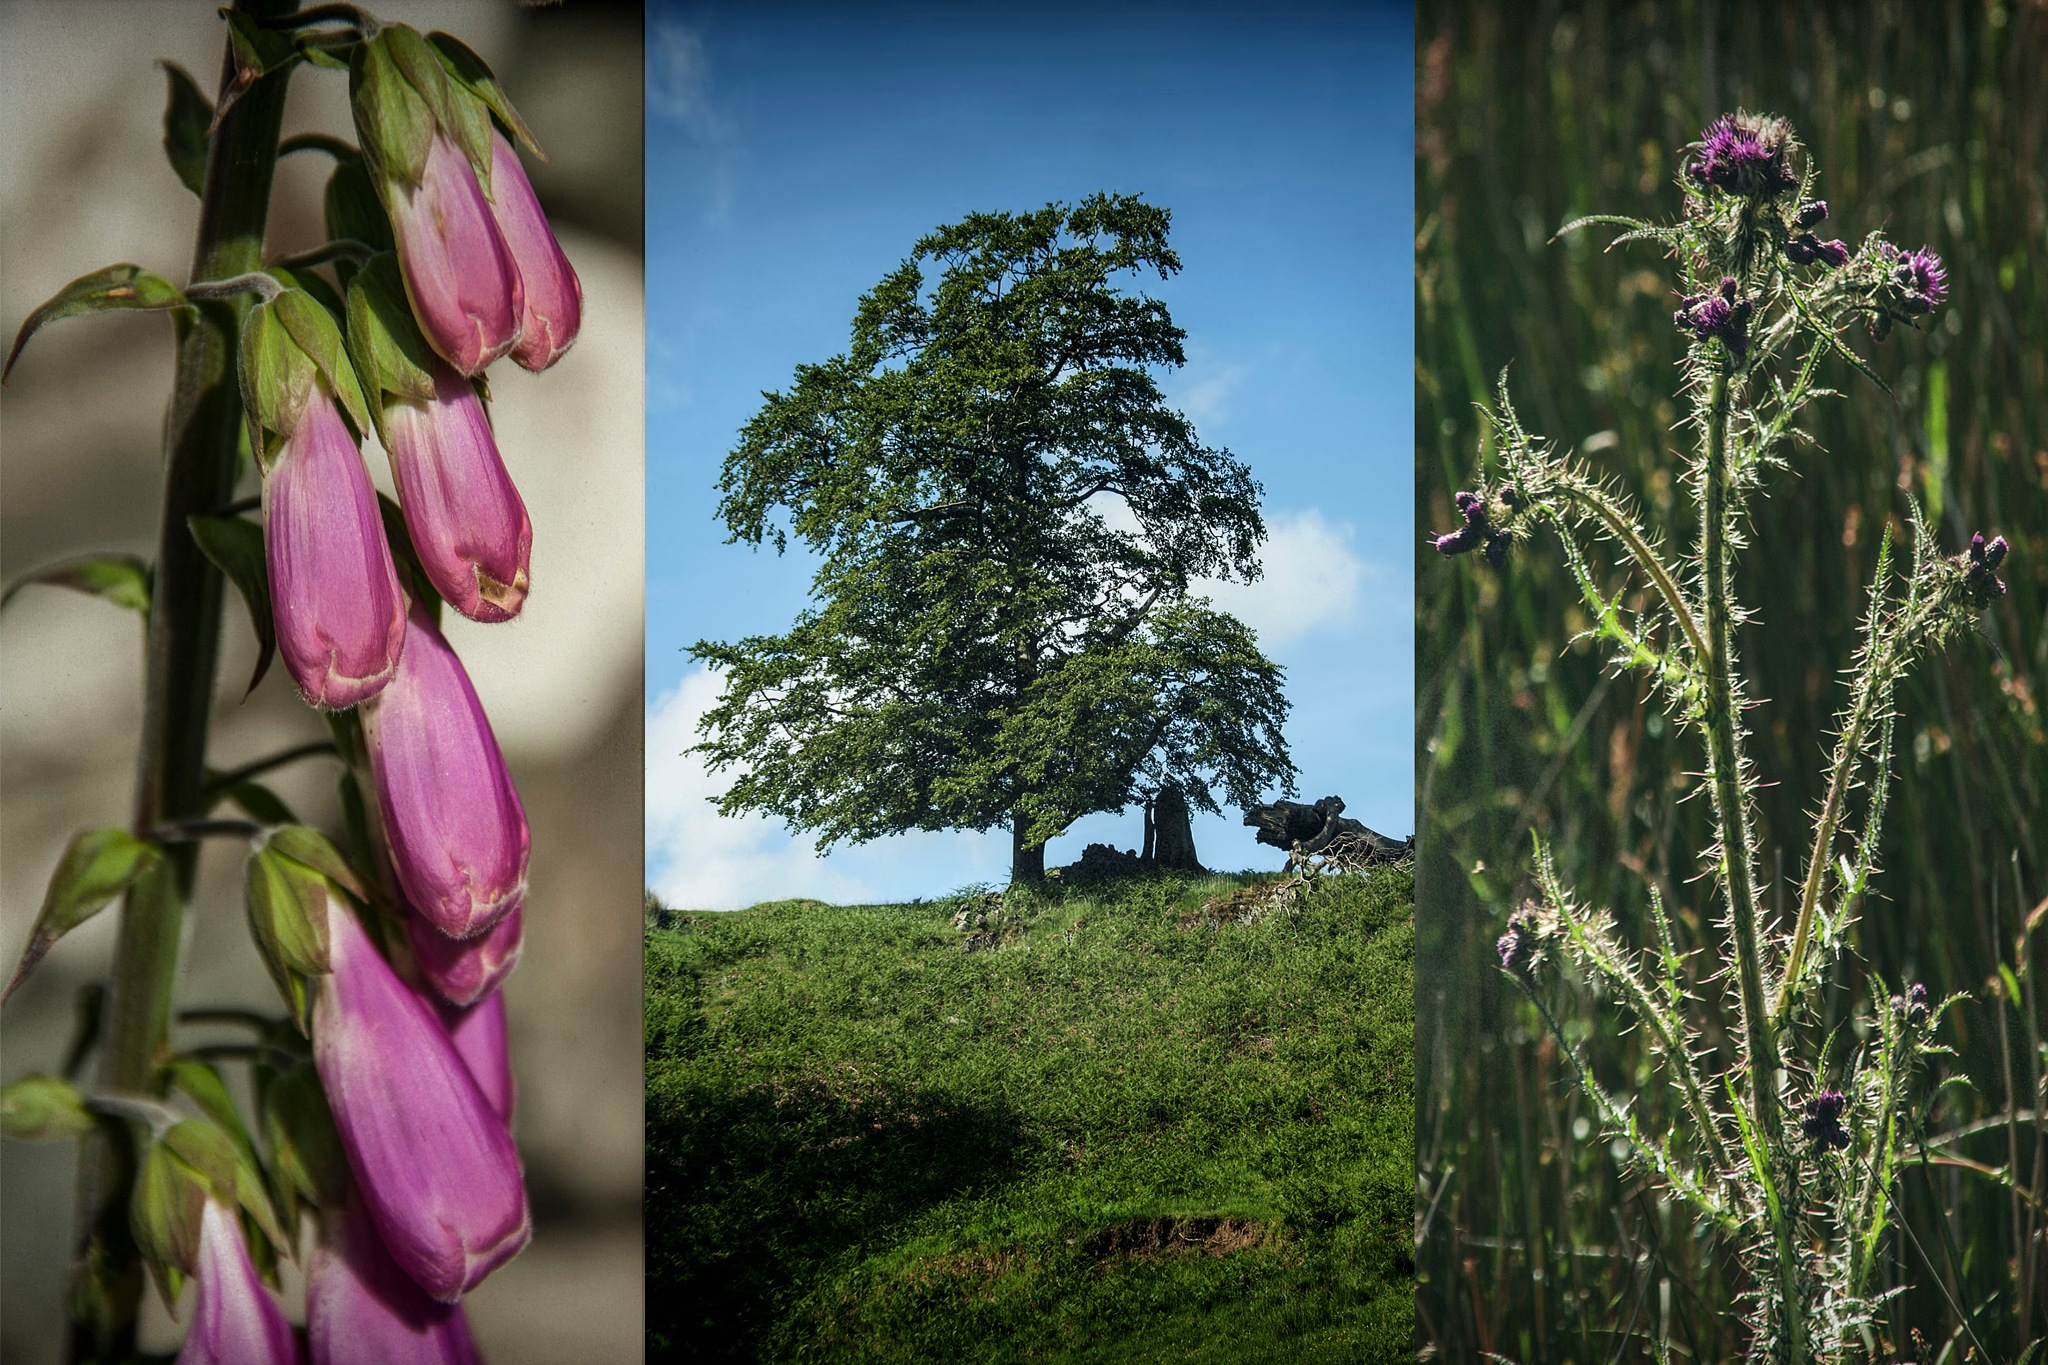 Cumbrian Tryptic by Willpower